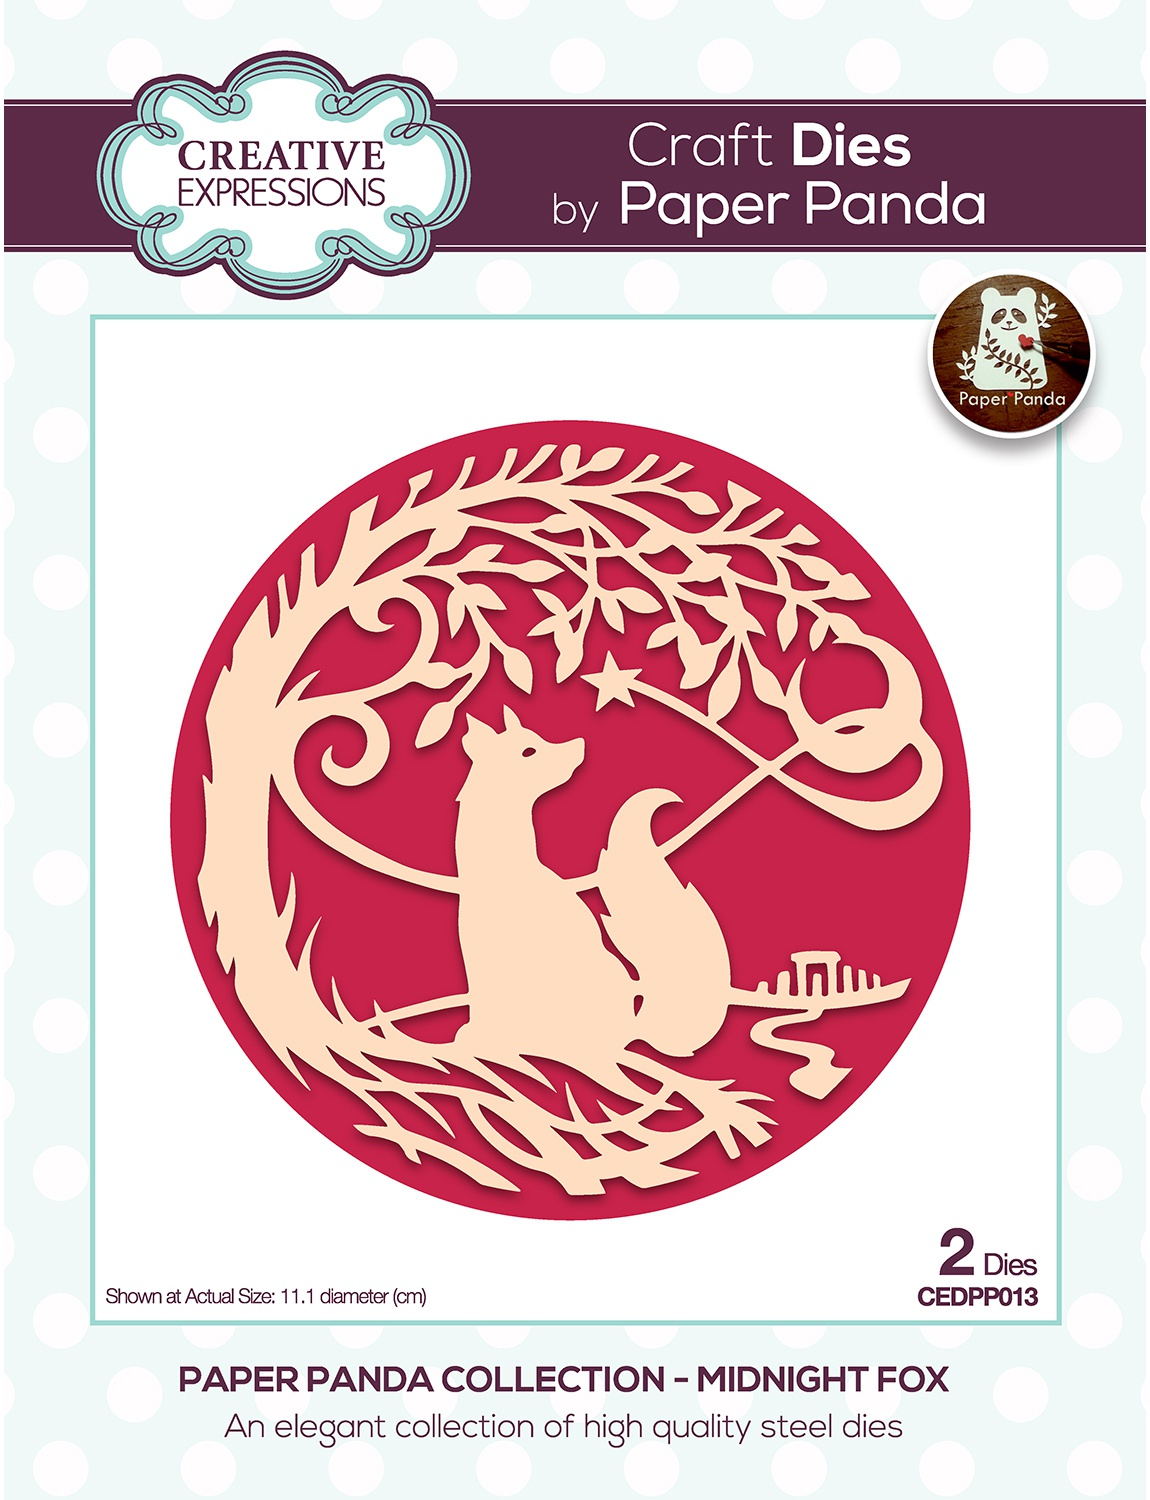 Creative Expressions Craft Dies By Paper Panda-Midnight Fox